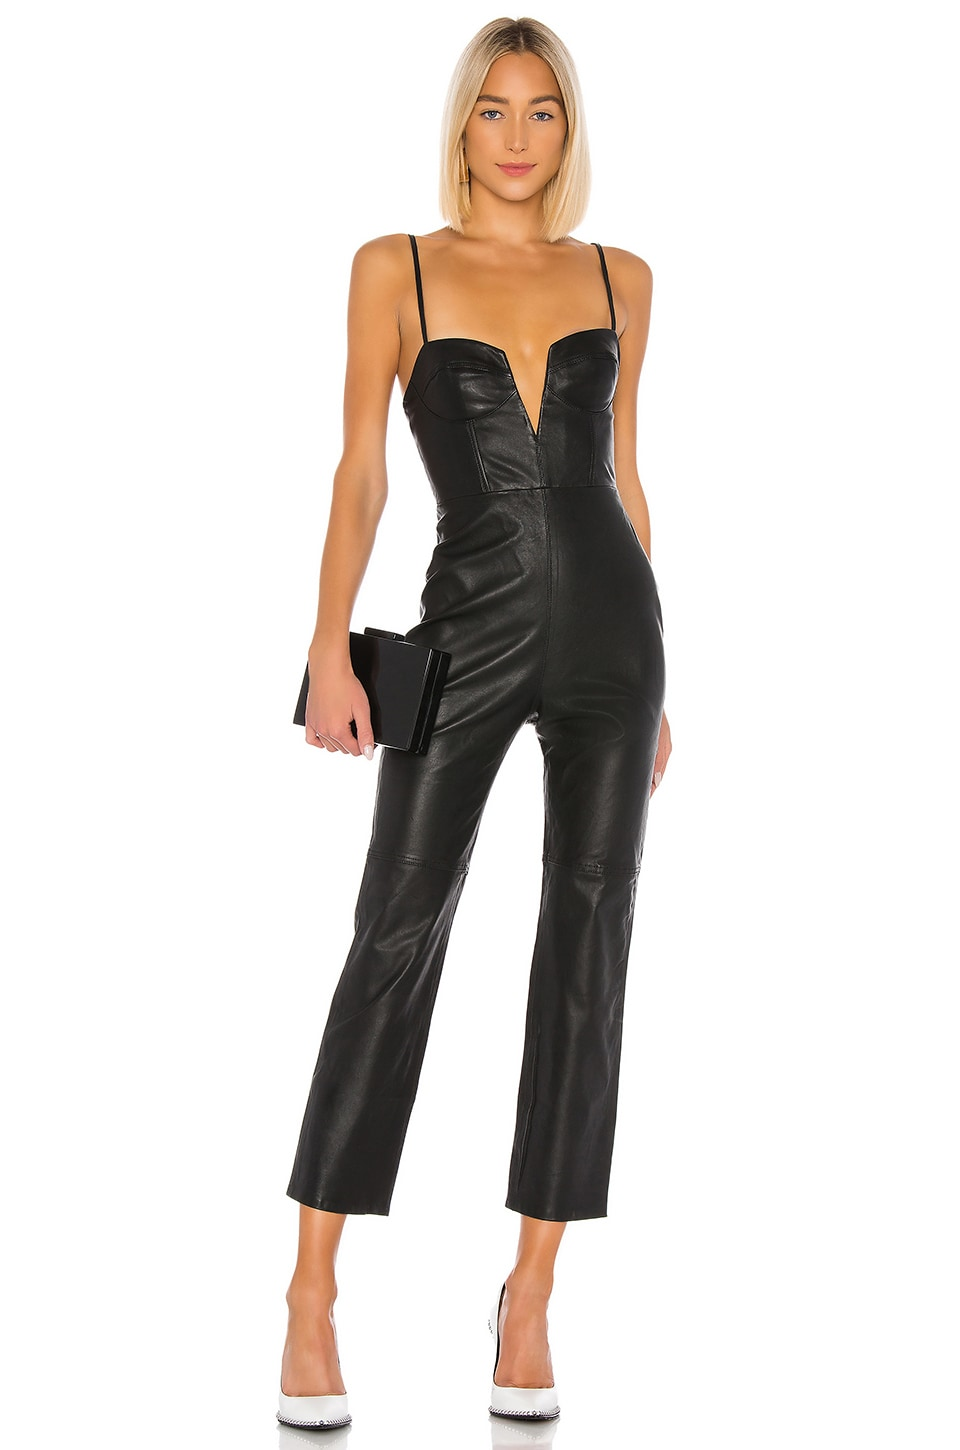 Camila Coelho Zofia Leather Jumpsuit in Black